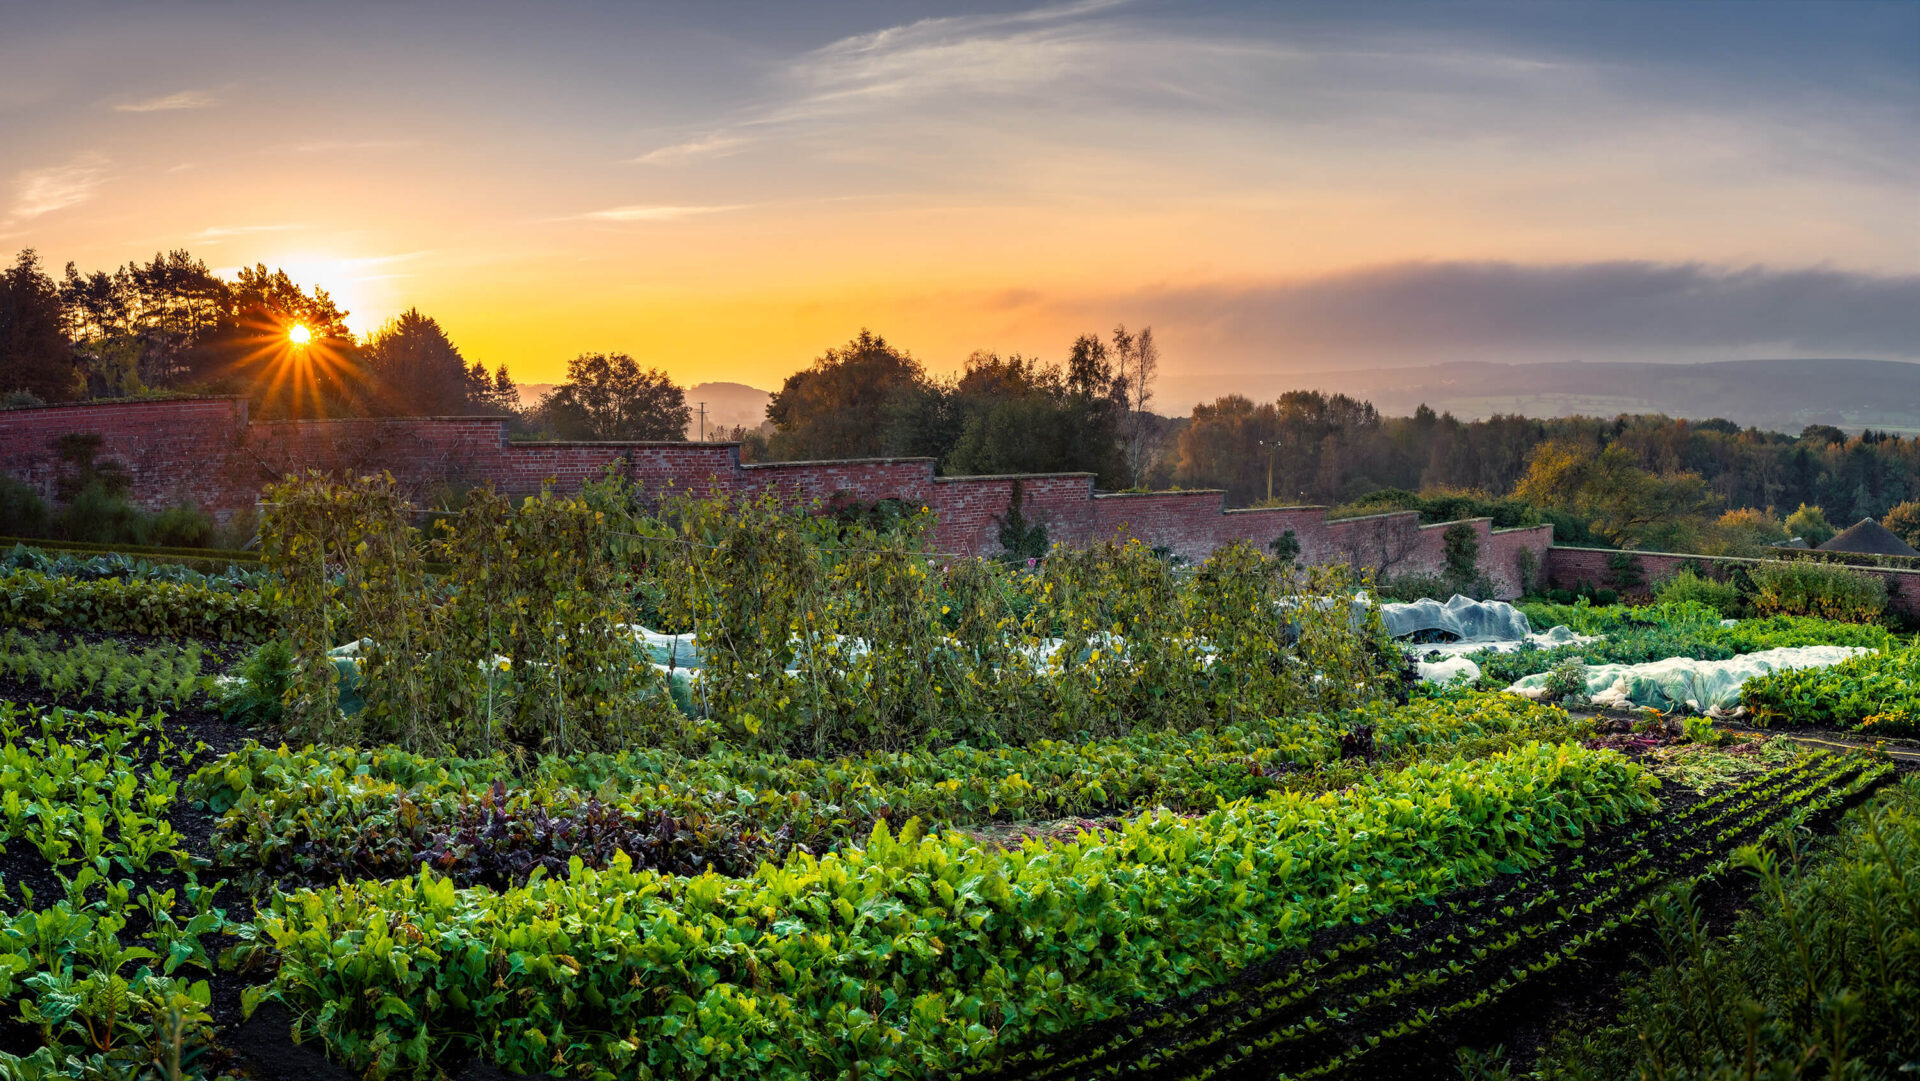 Sunrise Over The Walled Garden Vegetables